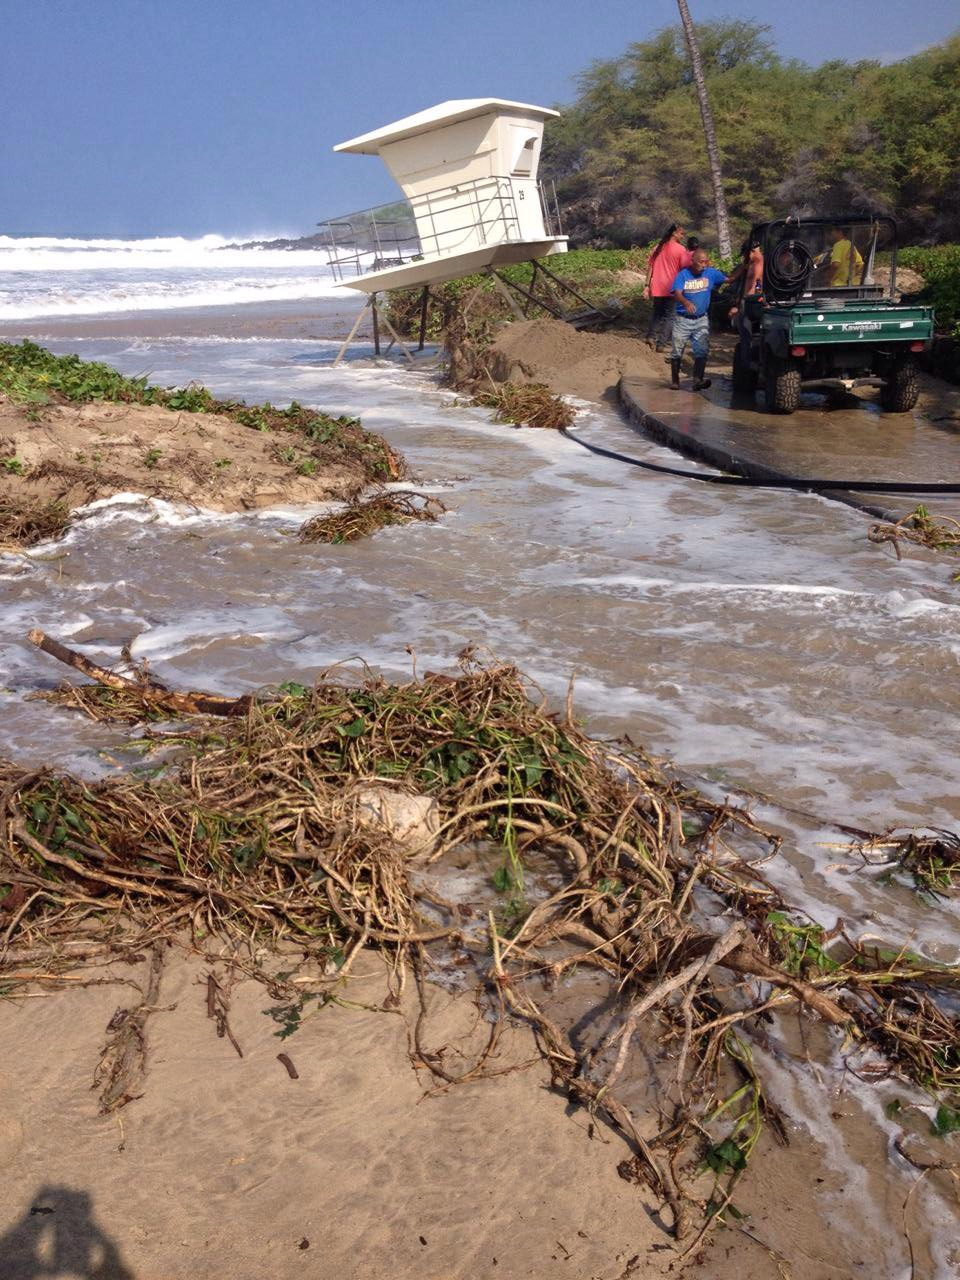 This photo shows damage to the Hapuna Beach State Park's north lifeguard tower. DNLR State Parks photo.